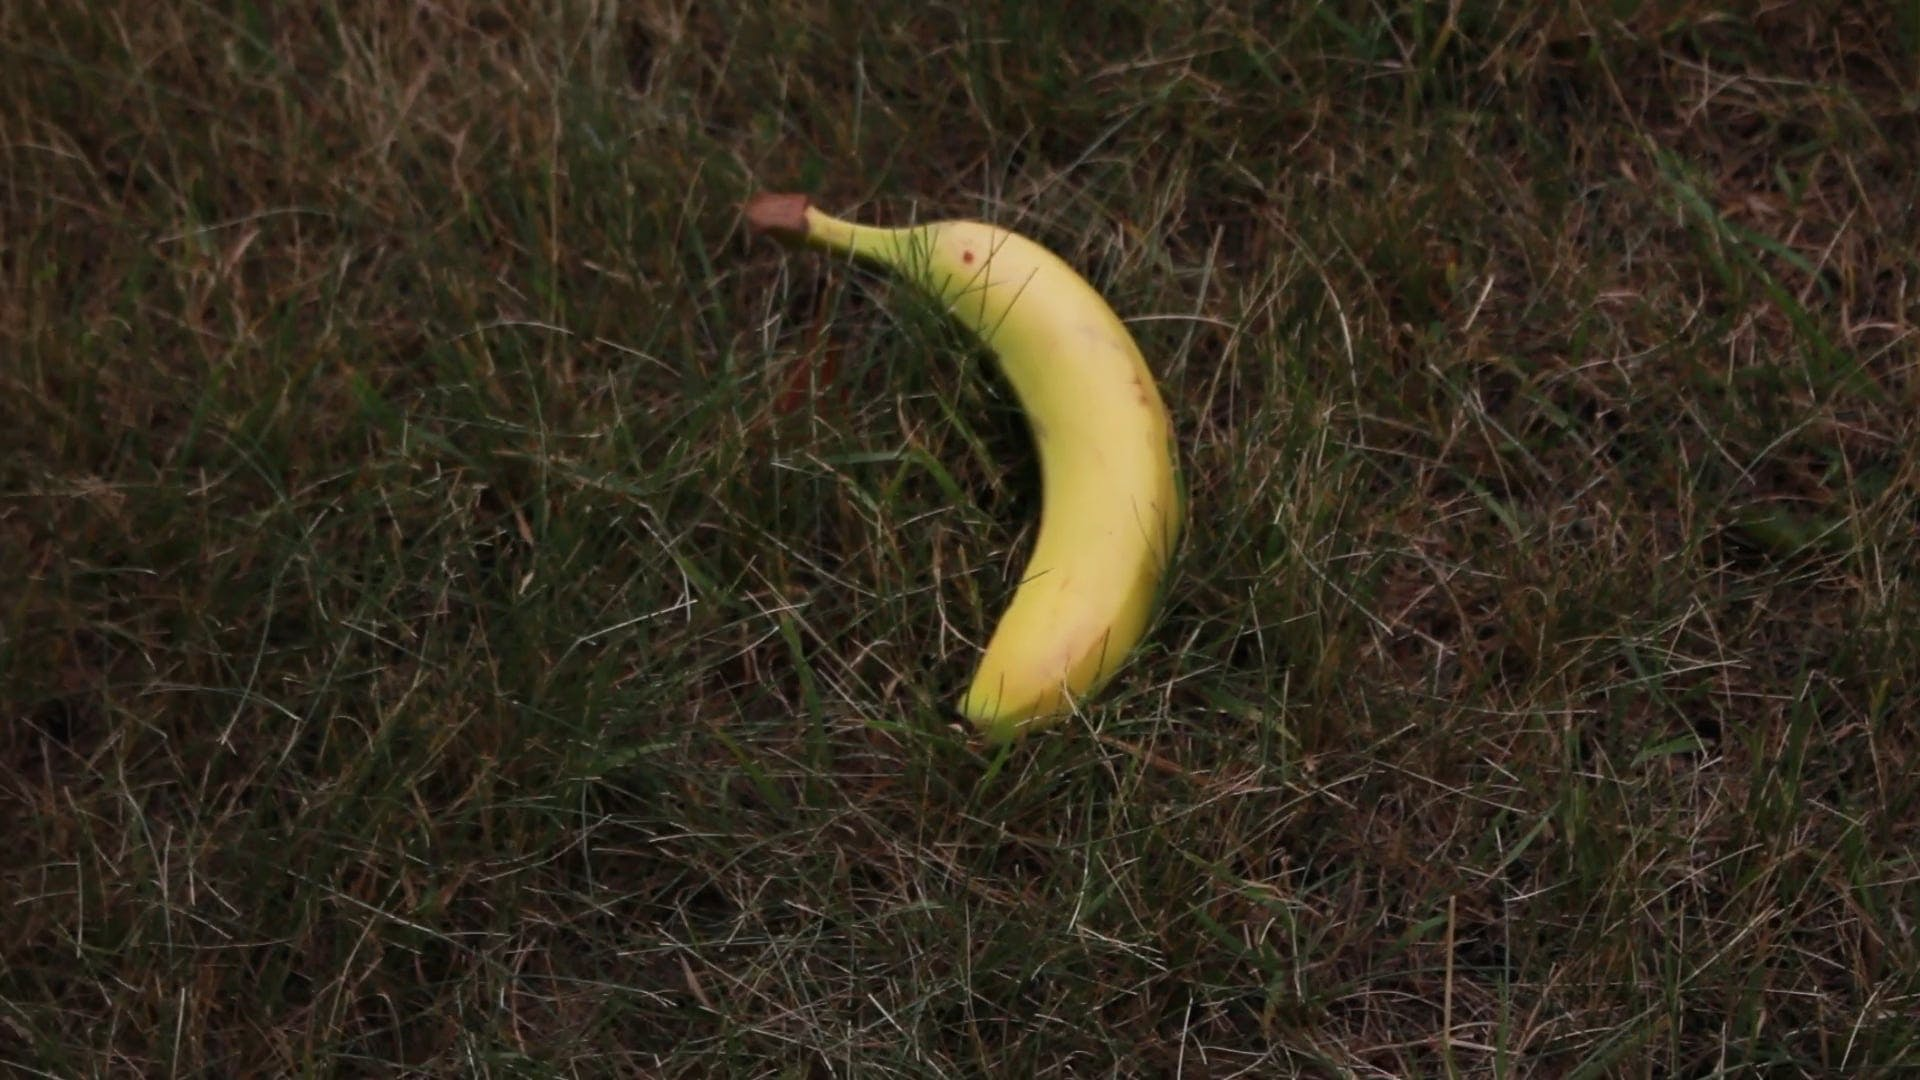 Banana On The Grass